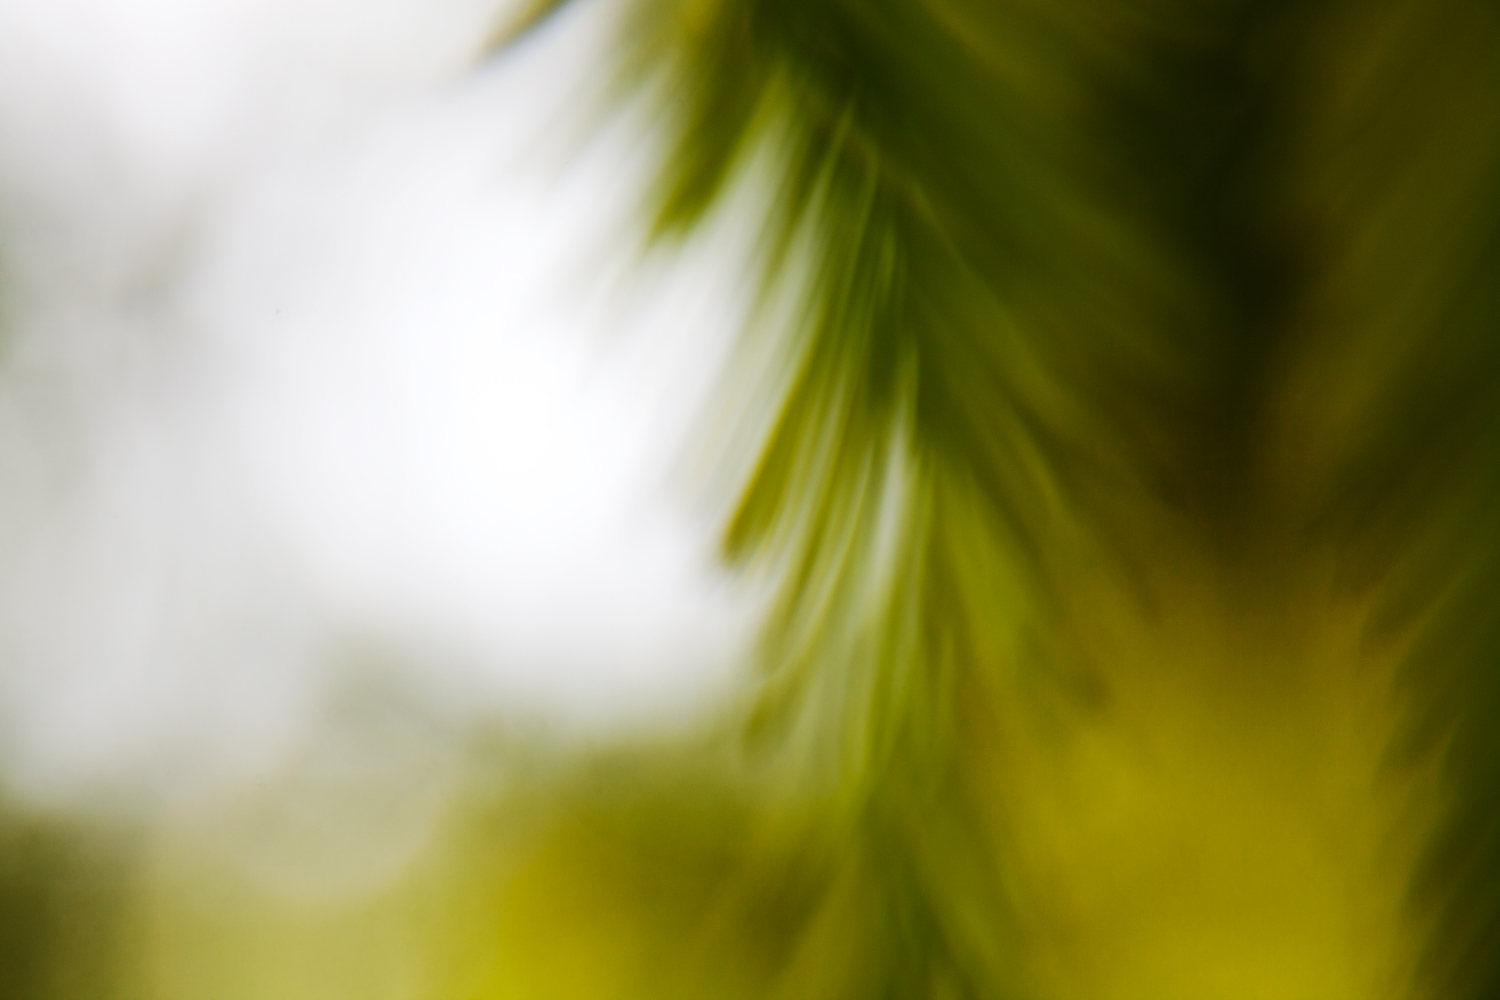 blurry-and-unfocused-photos